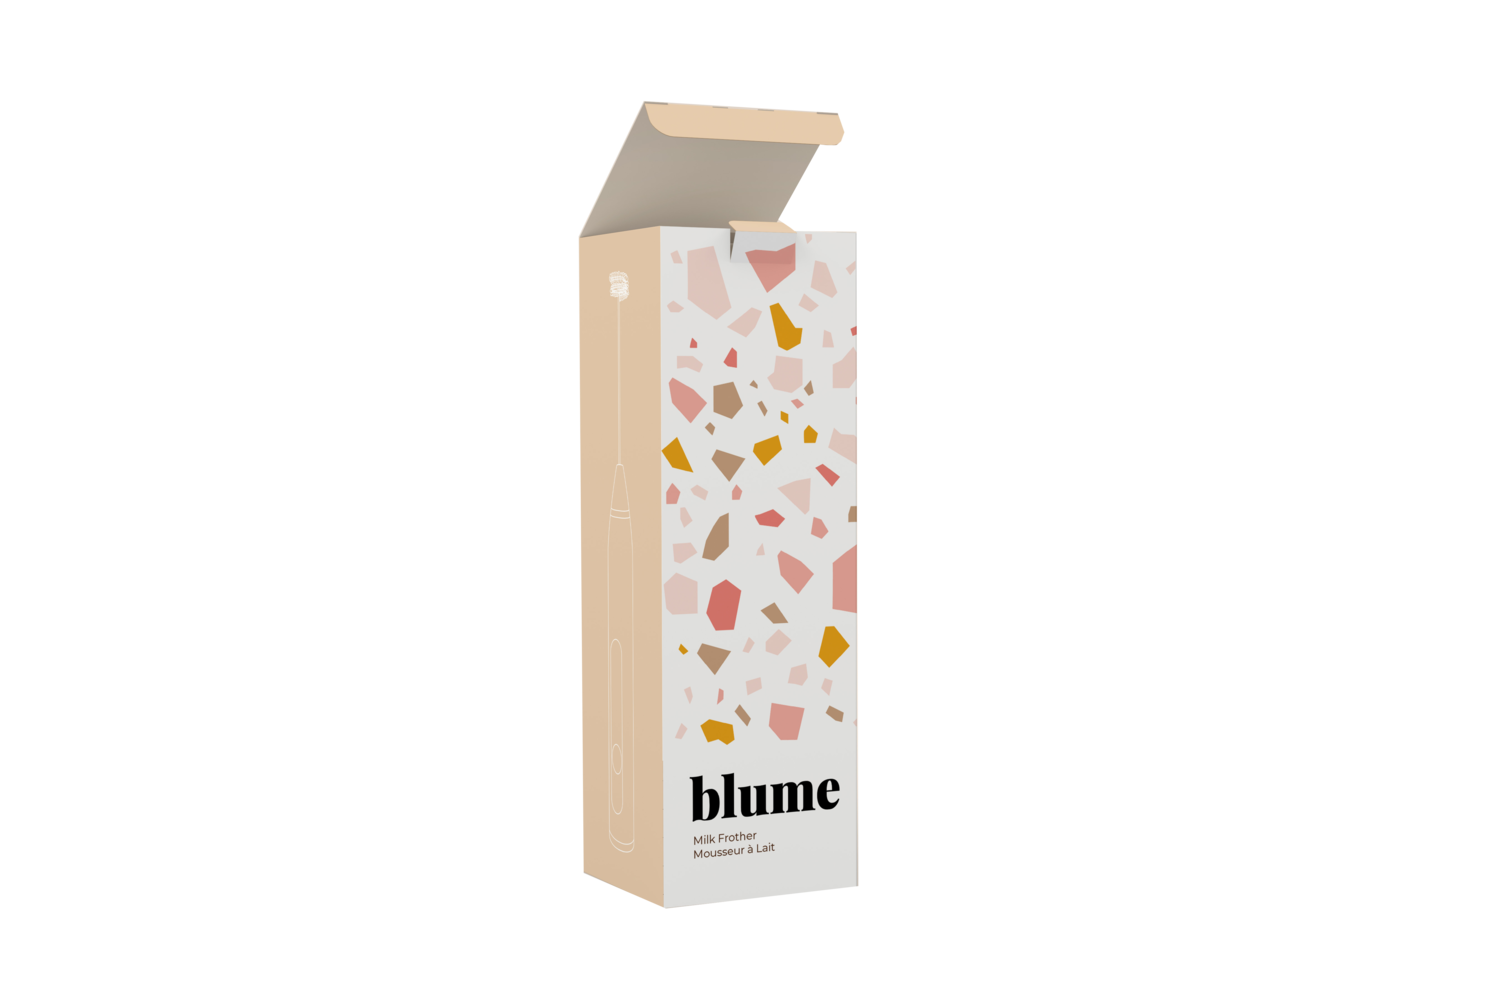 blume - Milk Frother